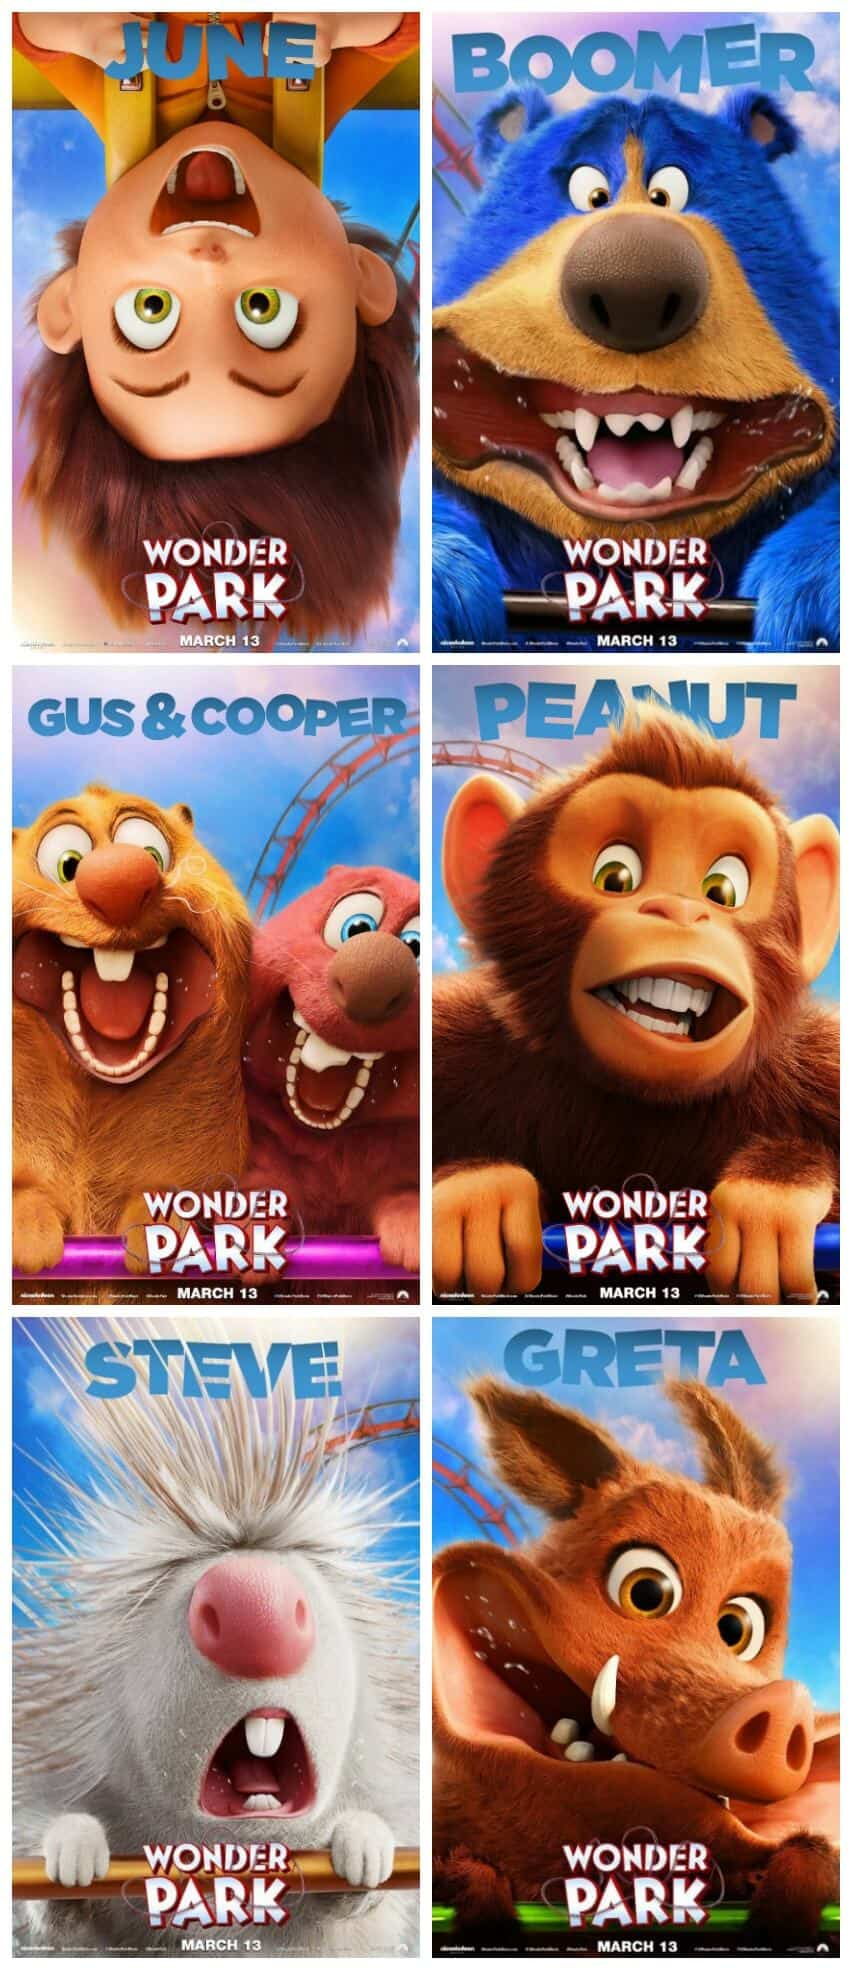 Meet the Wonder Park Characters